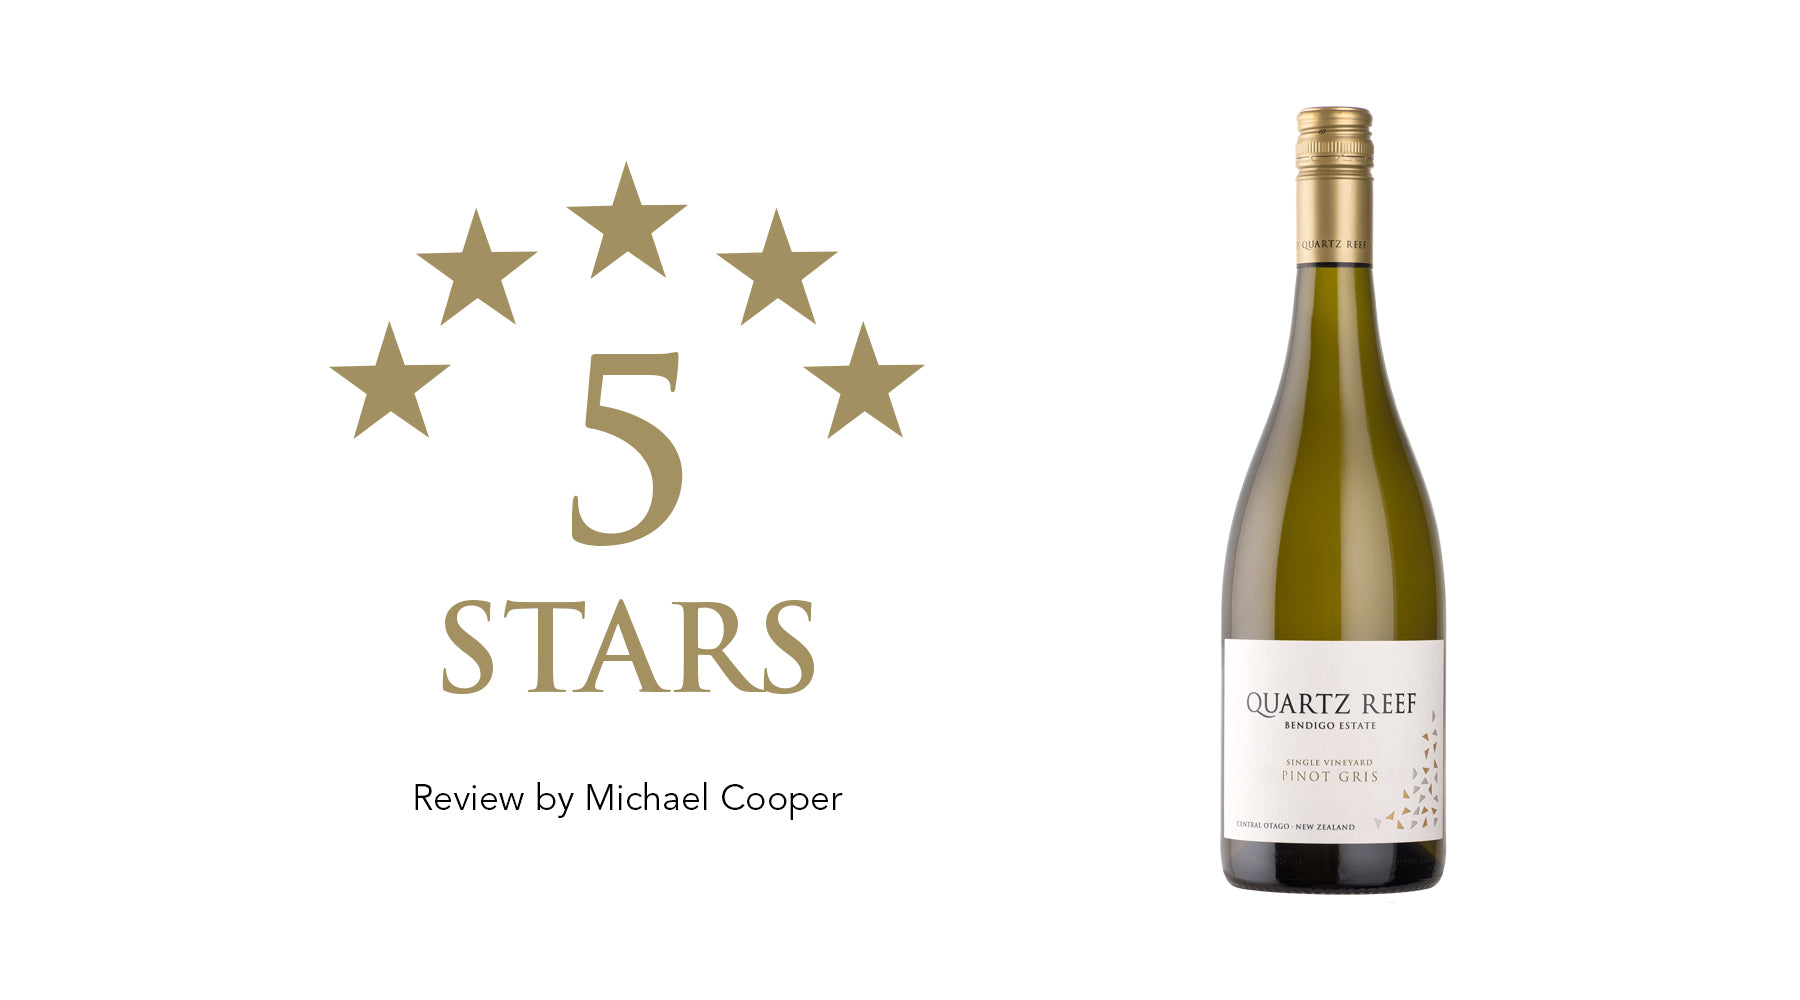 Pinot Gris 2020 - Awarded 5 Stars